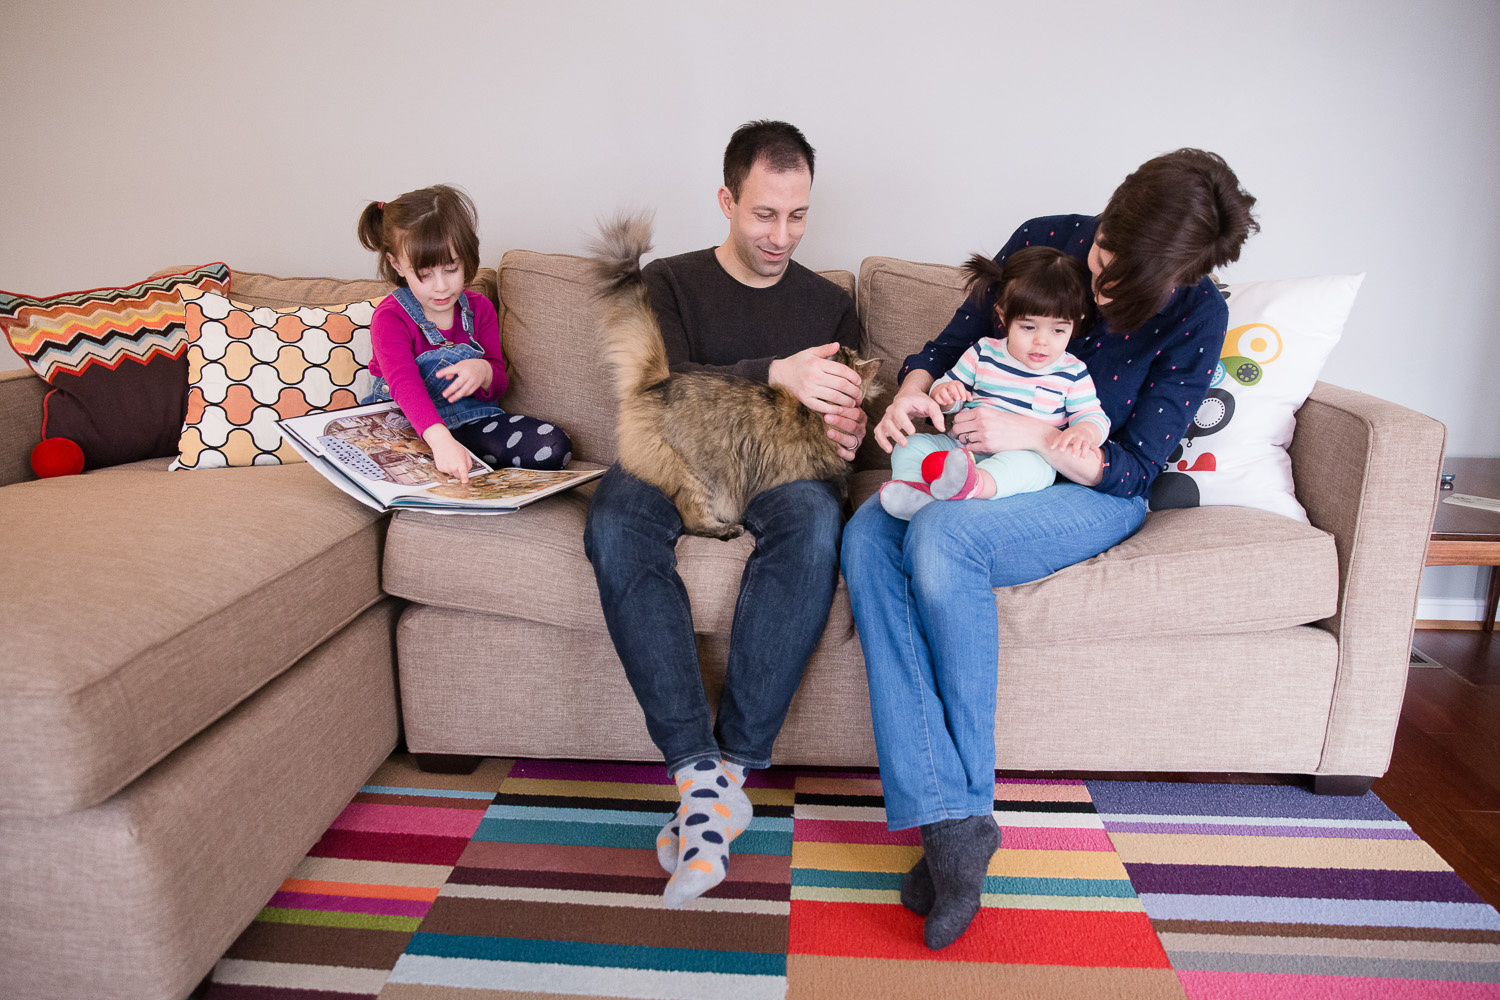 Parents read books to their children at home.